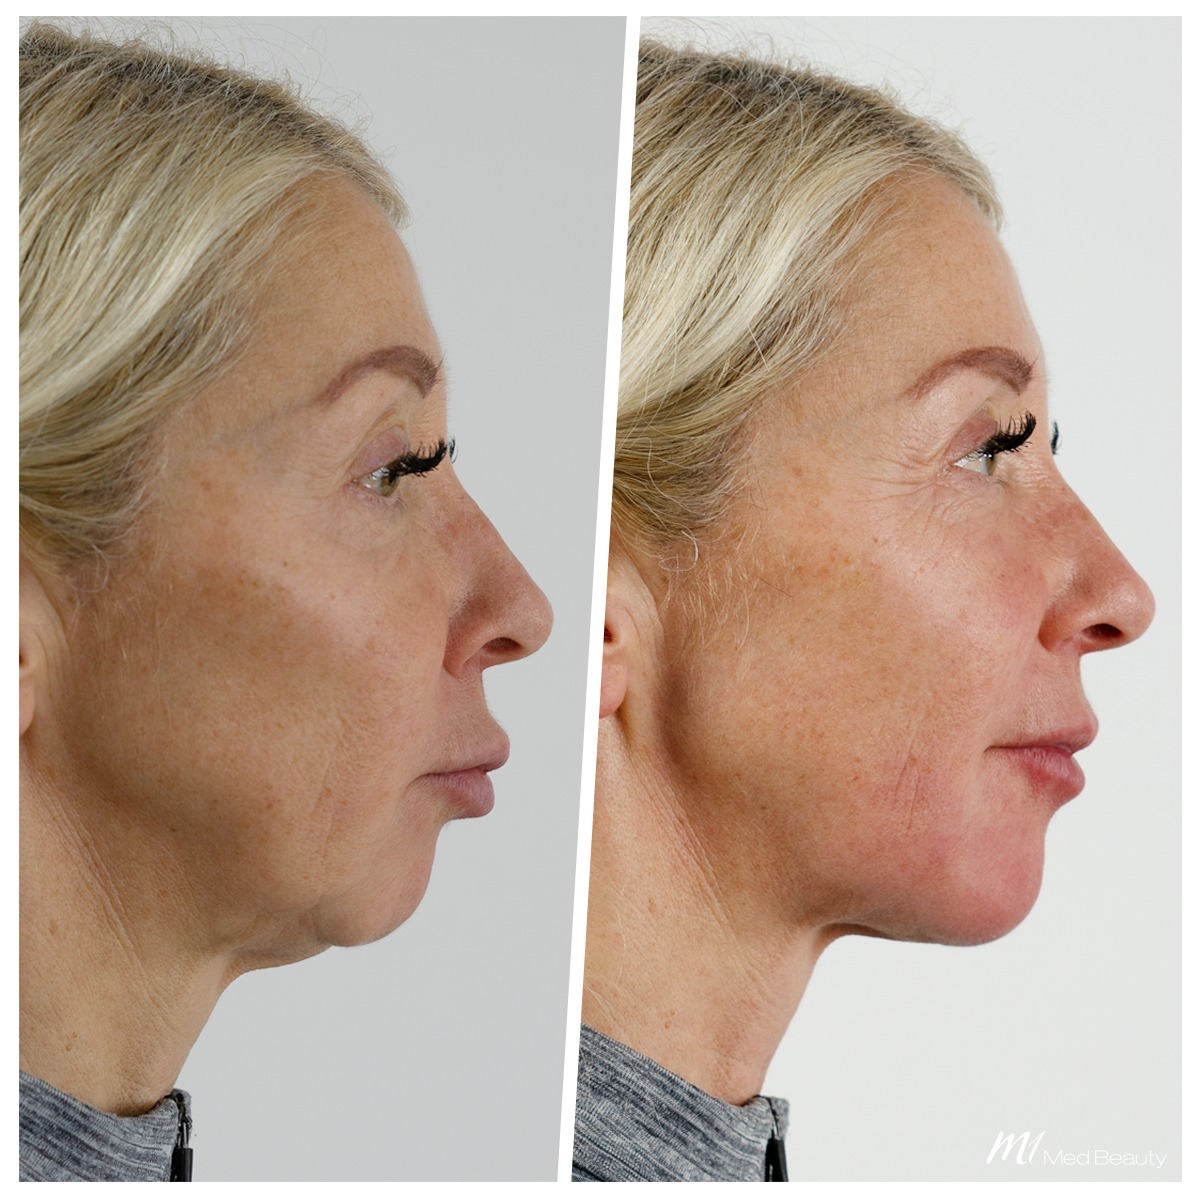 Jawline filler treatment at M1 Med Beauty